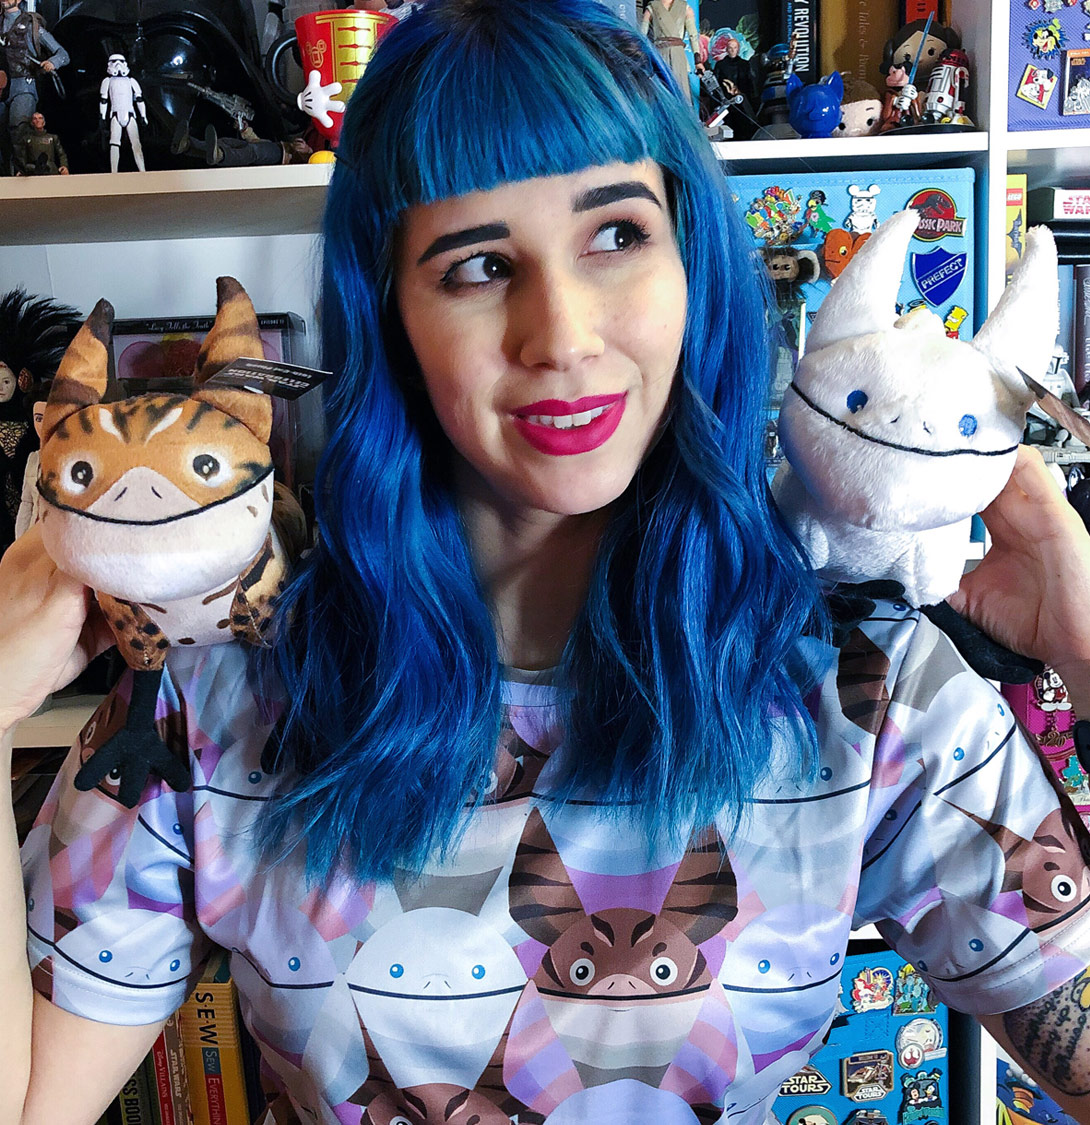 Amanda Jean Camarillo holding two Loth-cats